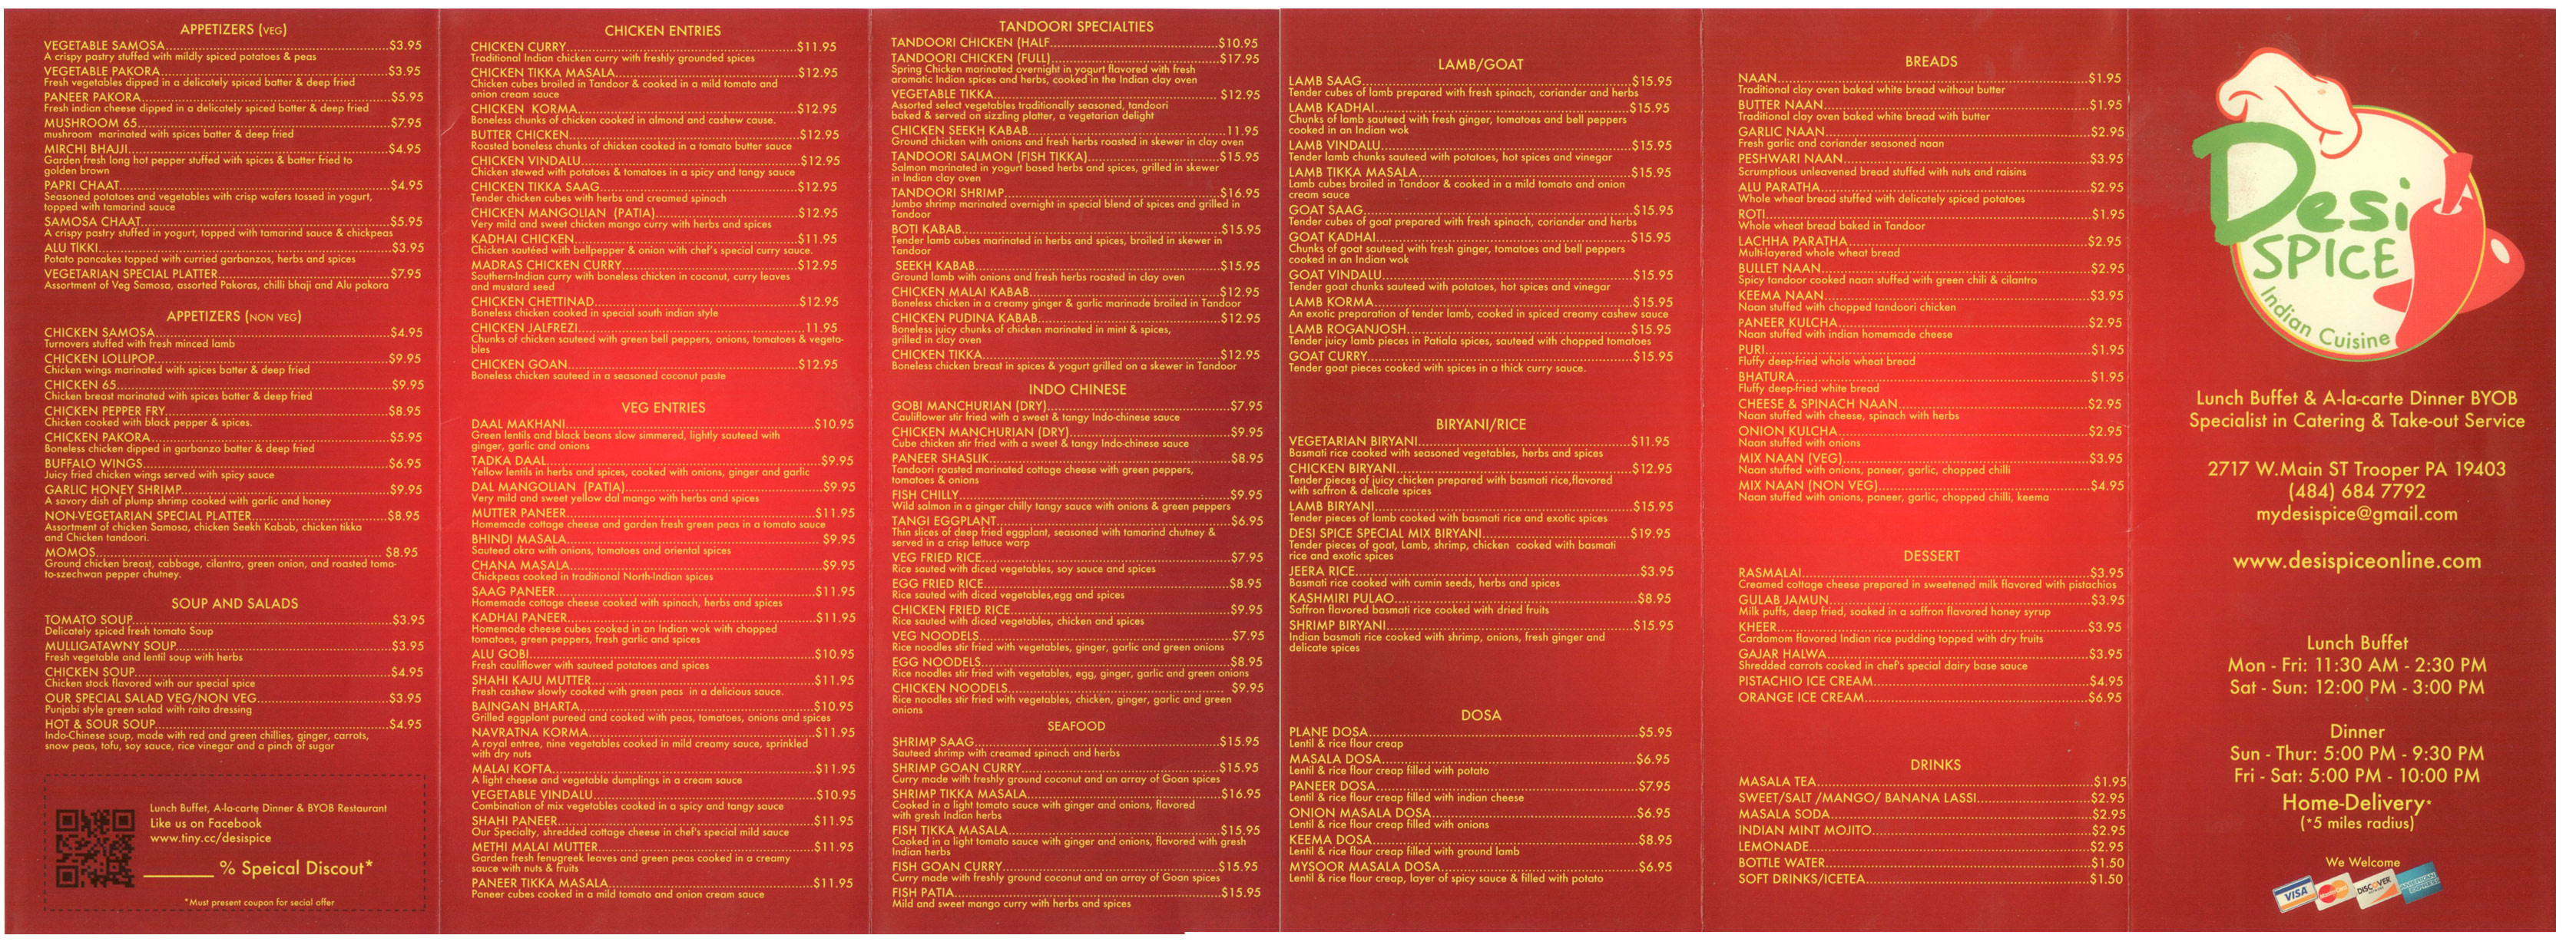 Desi Spice Indian Cuisine Menu